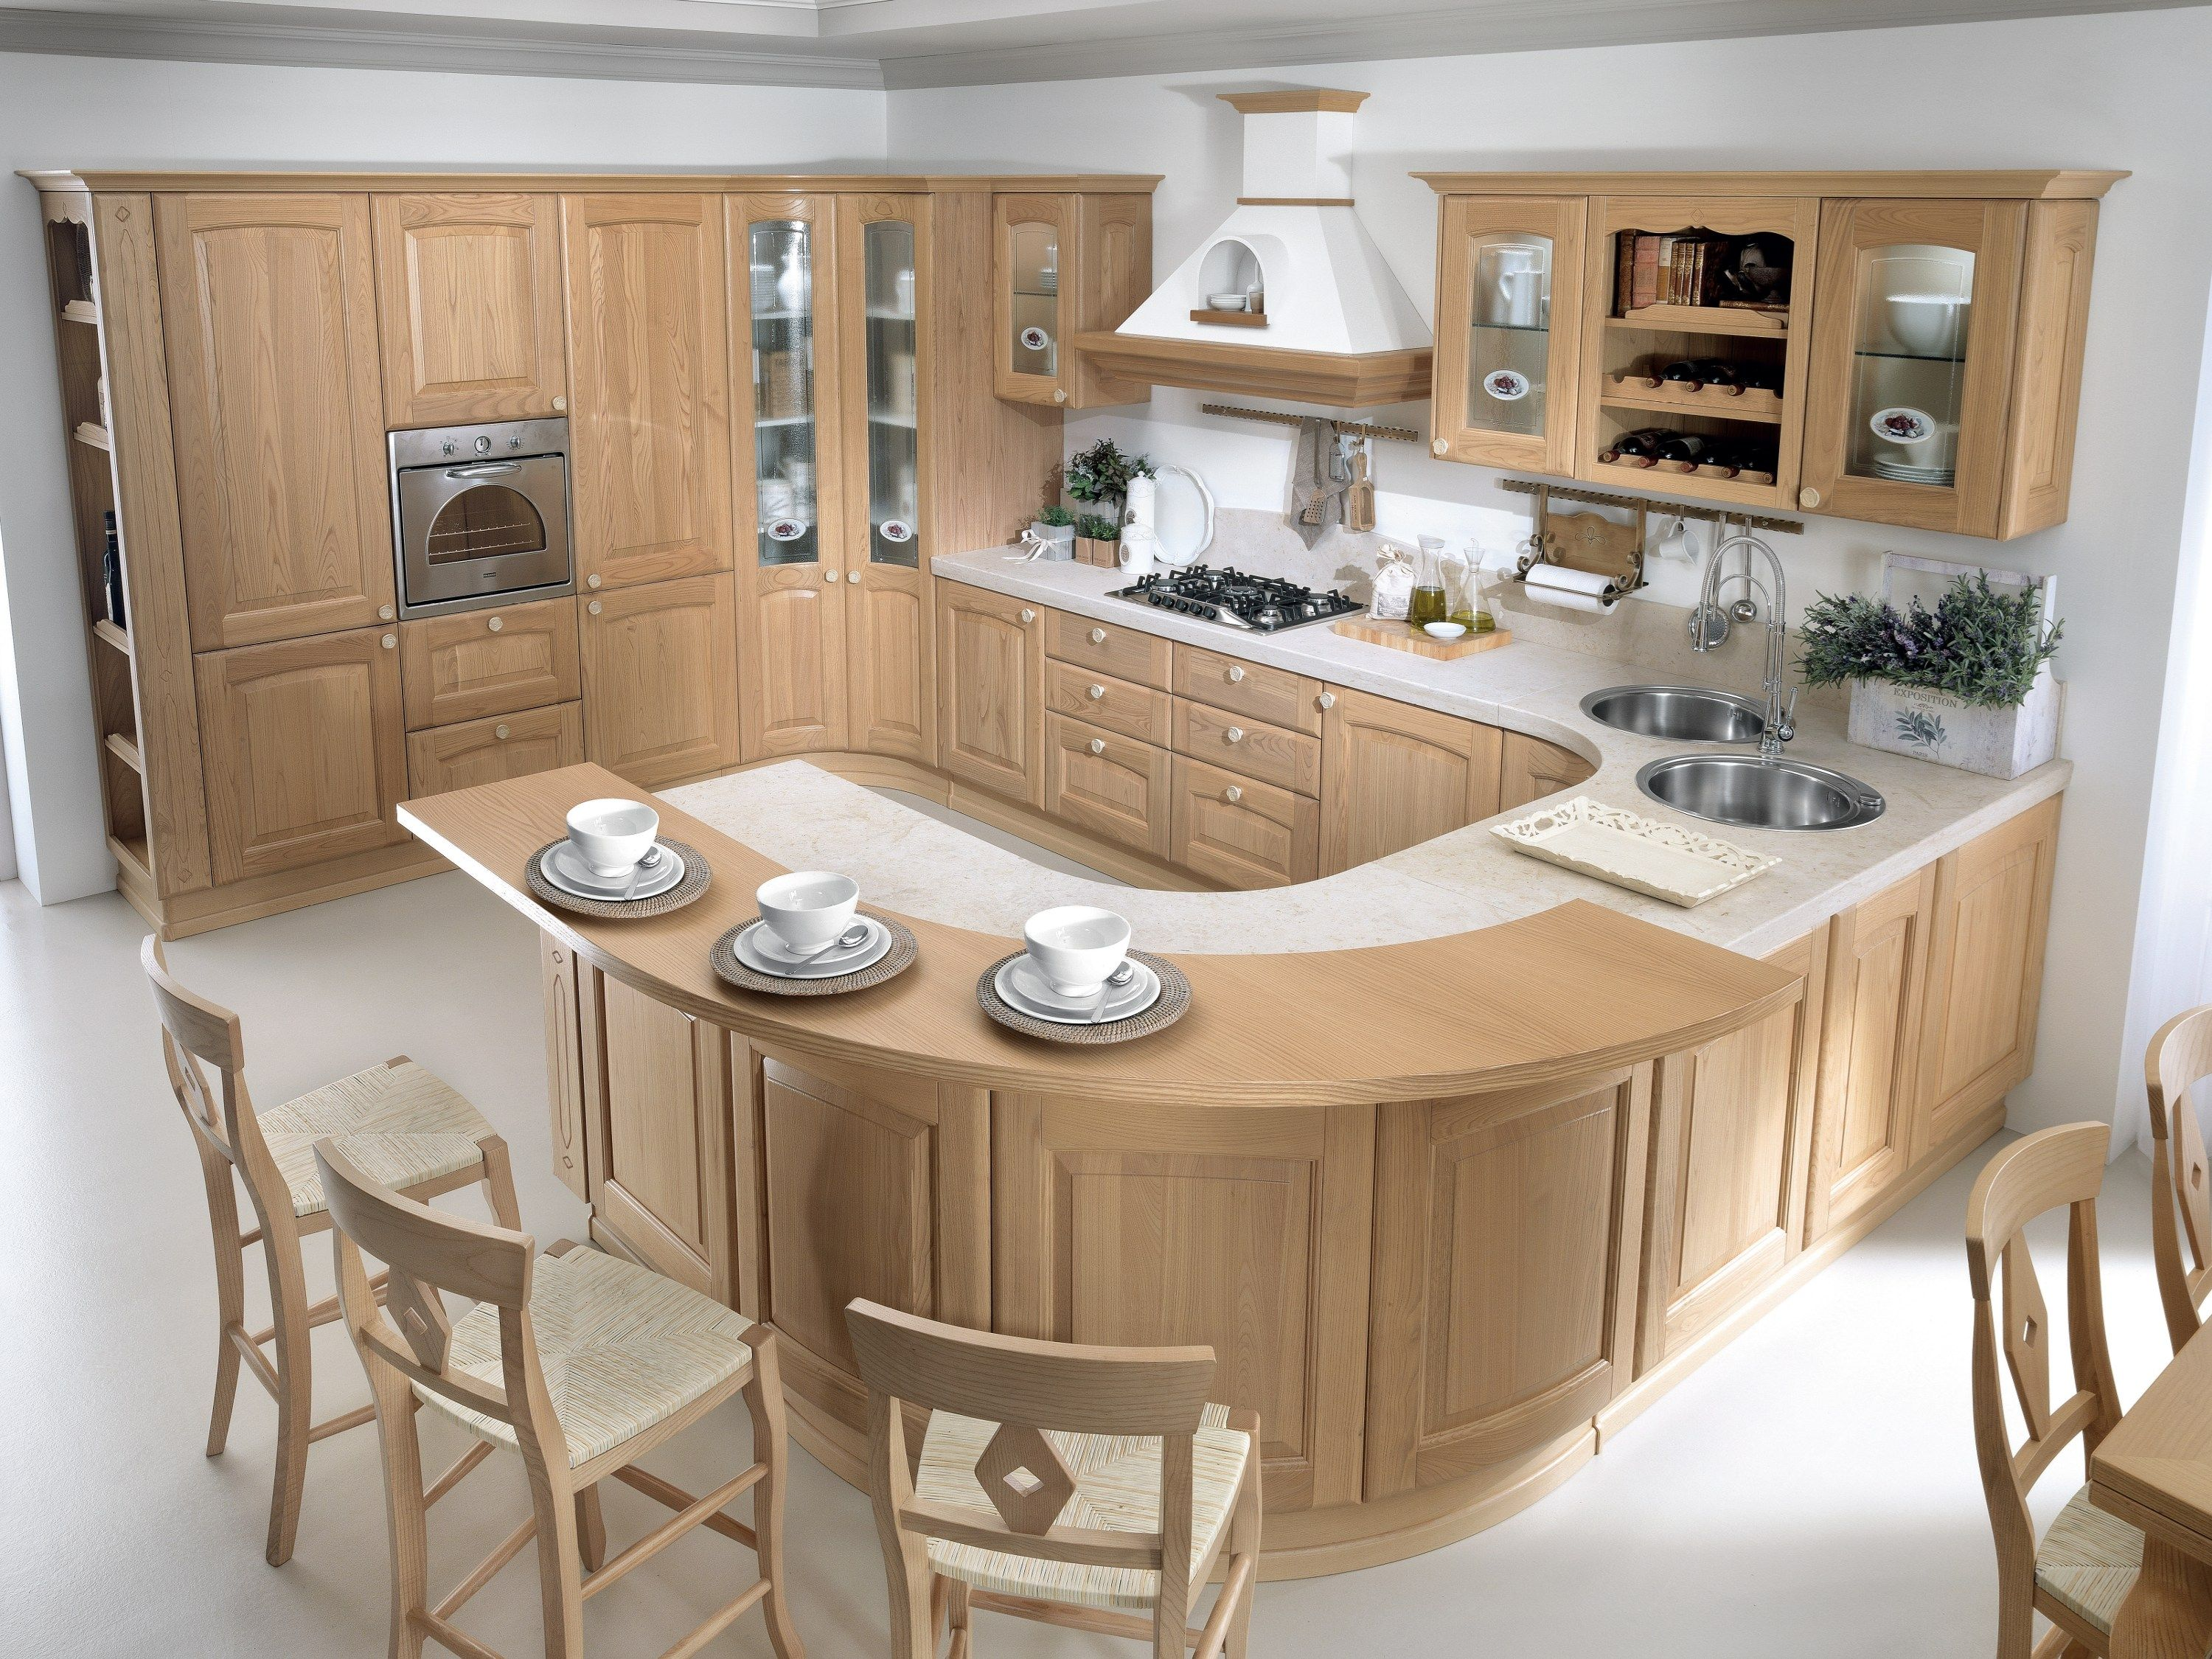 Cucina Lube Veronica.Chestnut Kitchen Veronica Collection By Cucine Lube